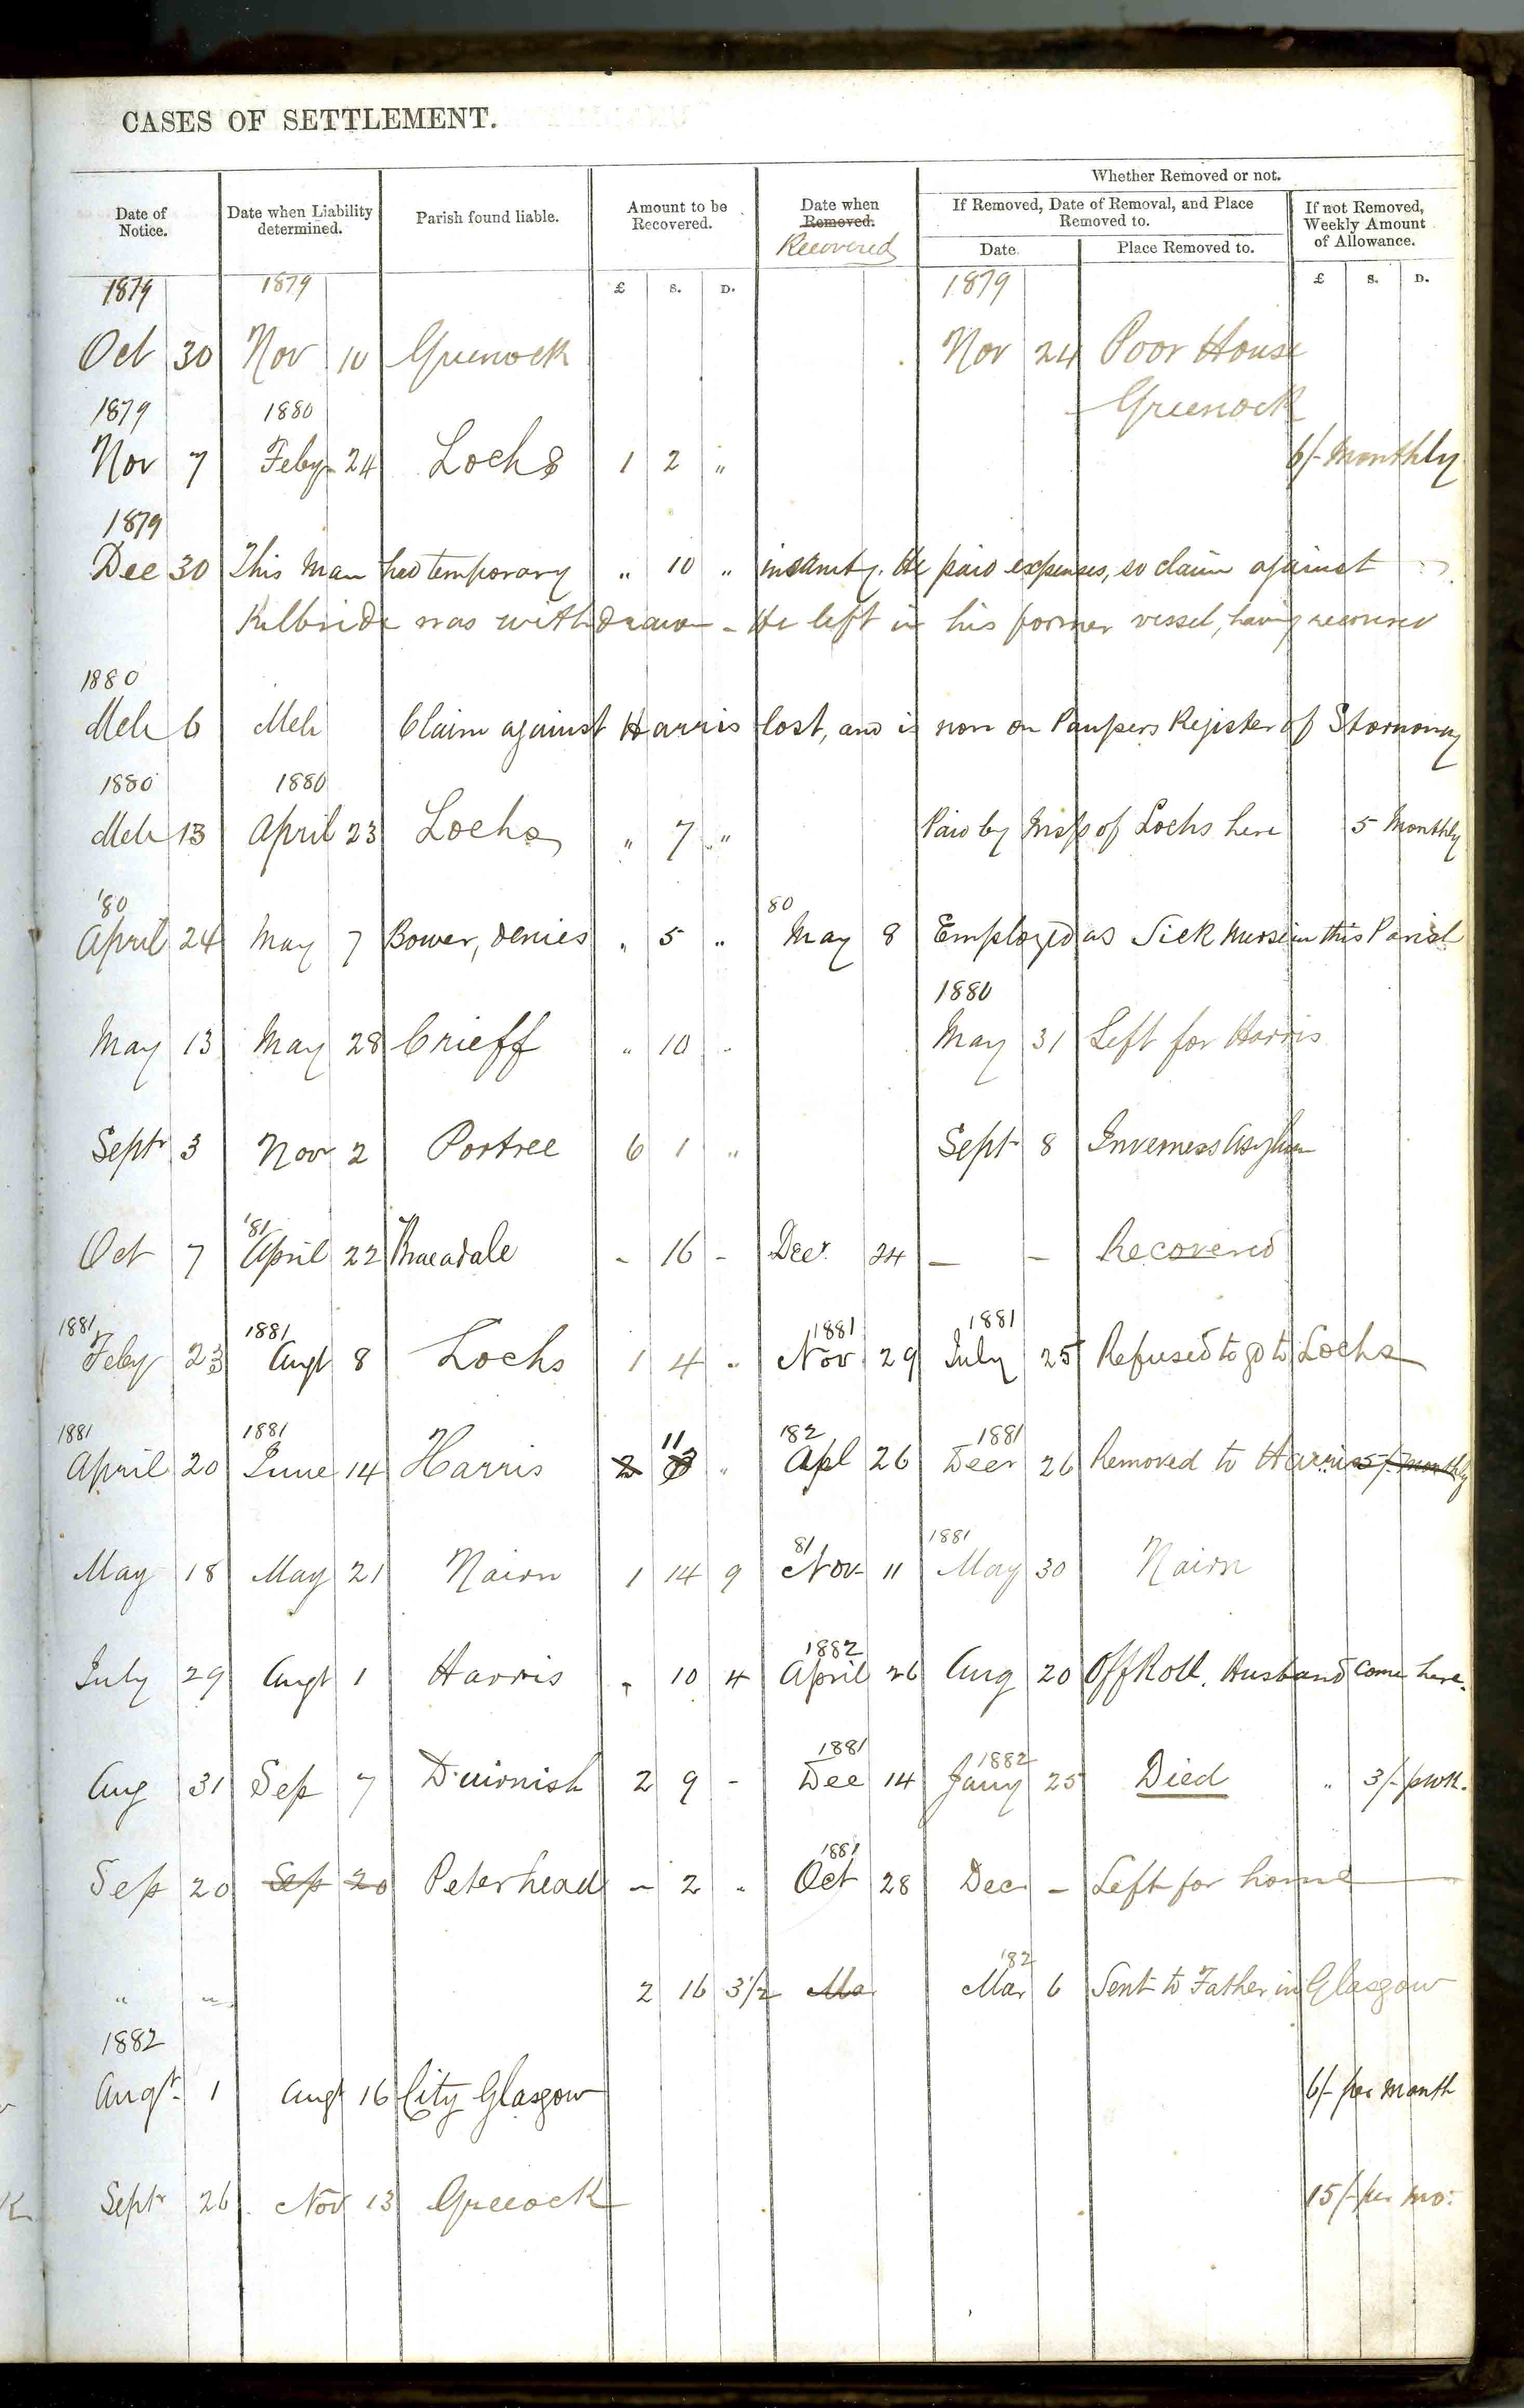 Extract from Stornoway Cases of Settlement